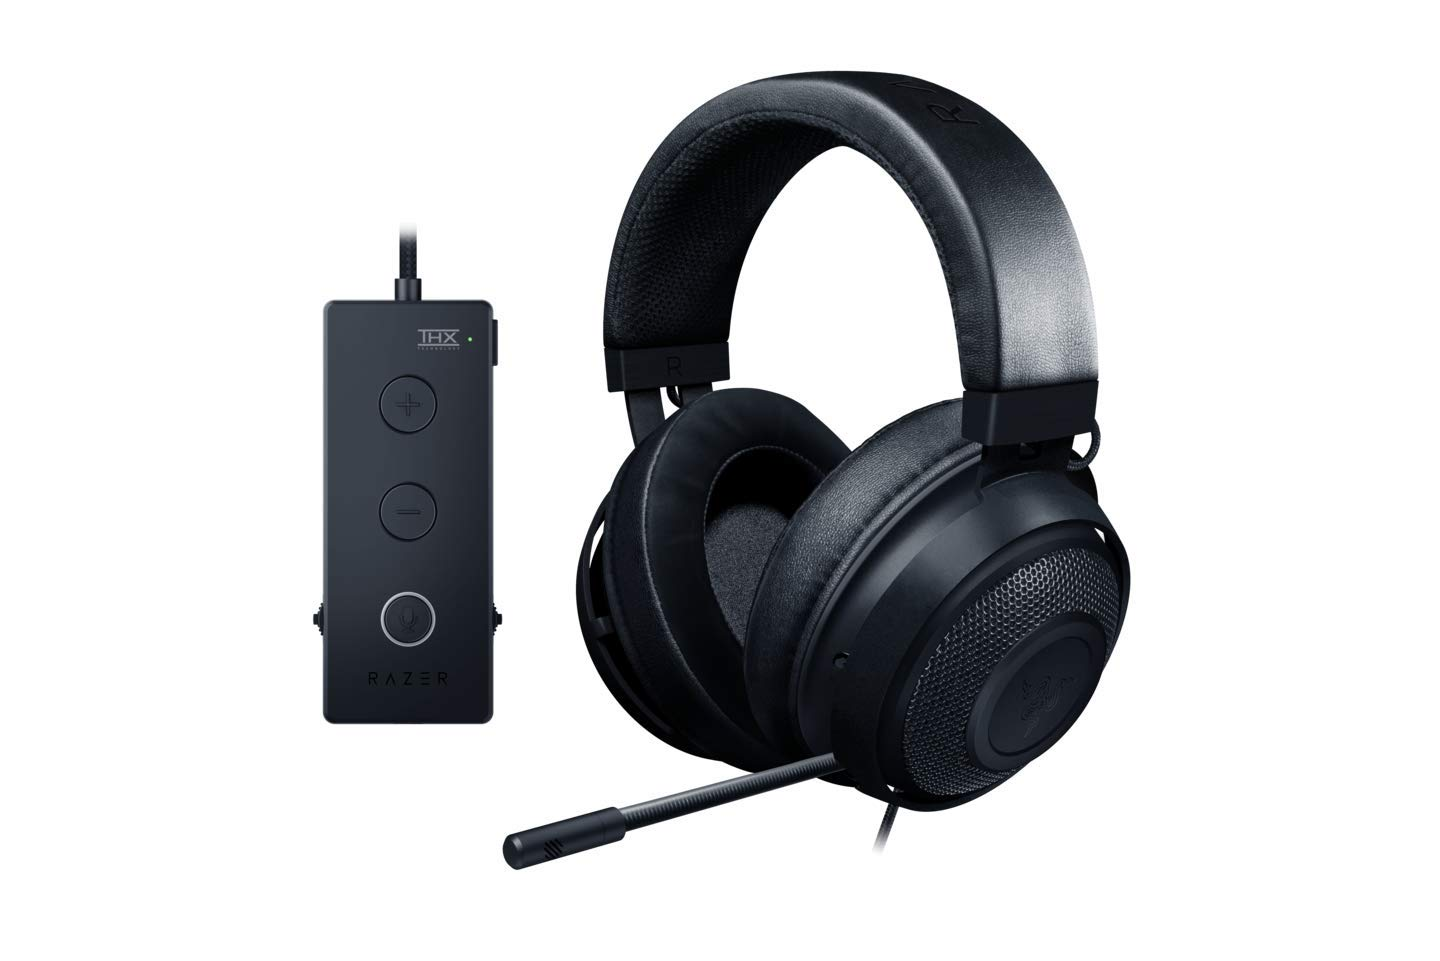 Razer Kraken Tournament Edition Gaming Headset - [Matte Black]:Aluminum Frame - Retractable Noise Cancelling Mic - THX 7.1 Surround Sound USB DAC - For PC, Xbox, PS4, Nintendo Switch